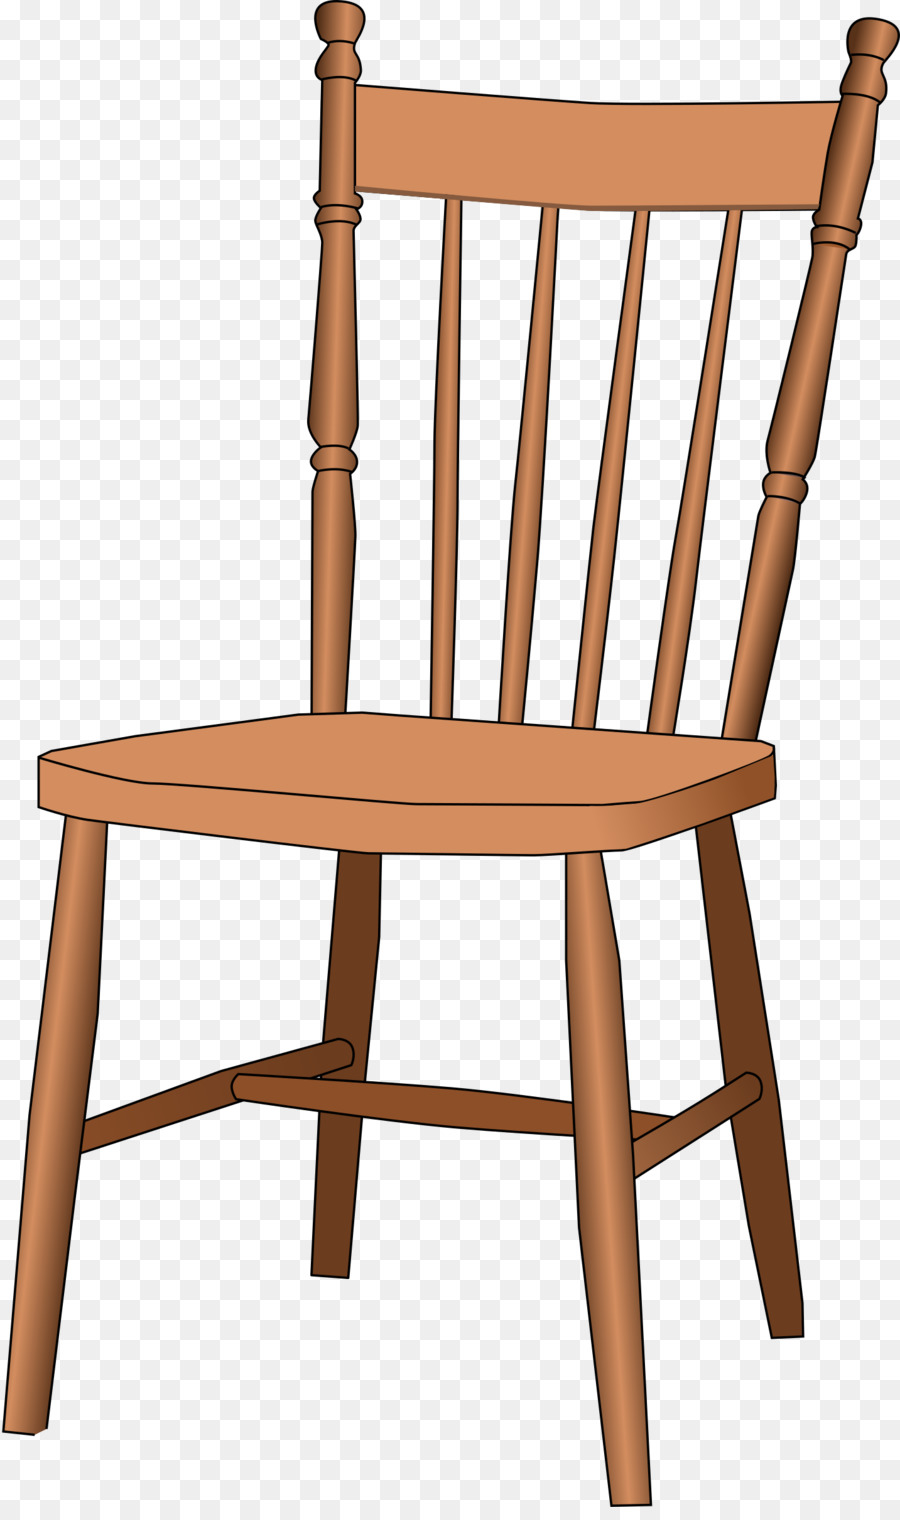 Transparent chair clipart clipart black and white stock Wood Table png download - 1433*2400 - Free Transparent Chair ... clipart black and white stock